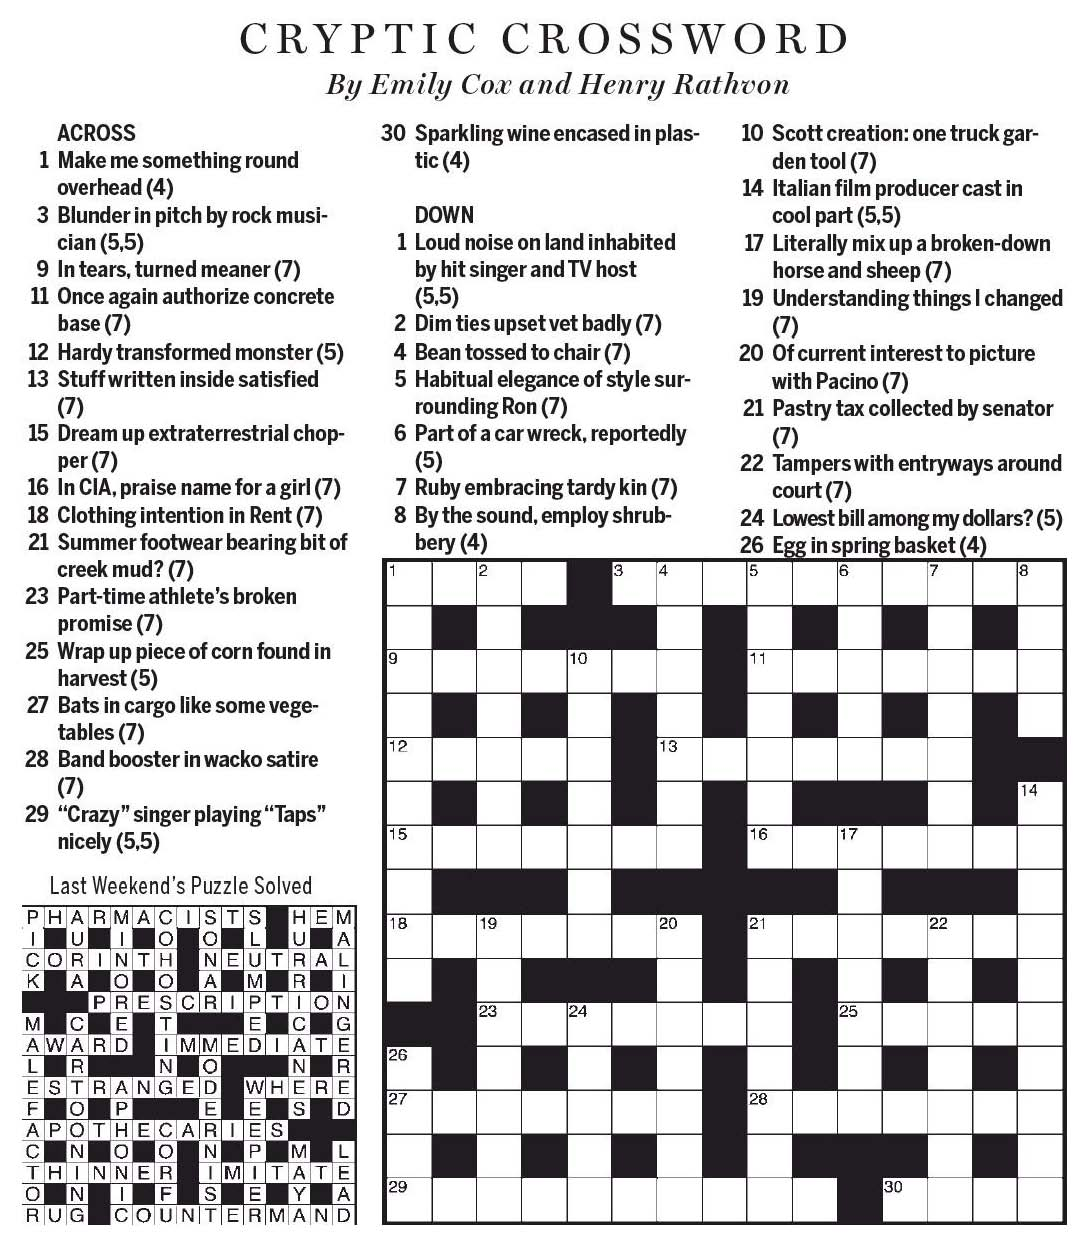 National post cryptic crossword forum september 2017 introduction malvernweather Images